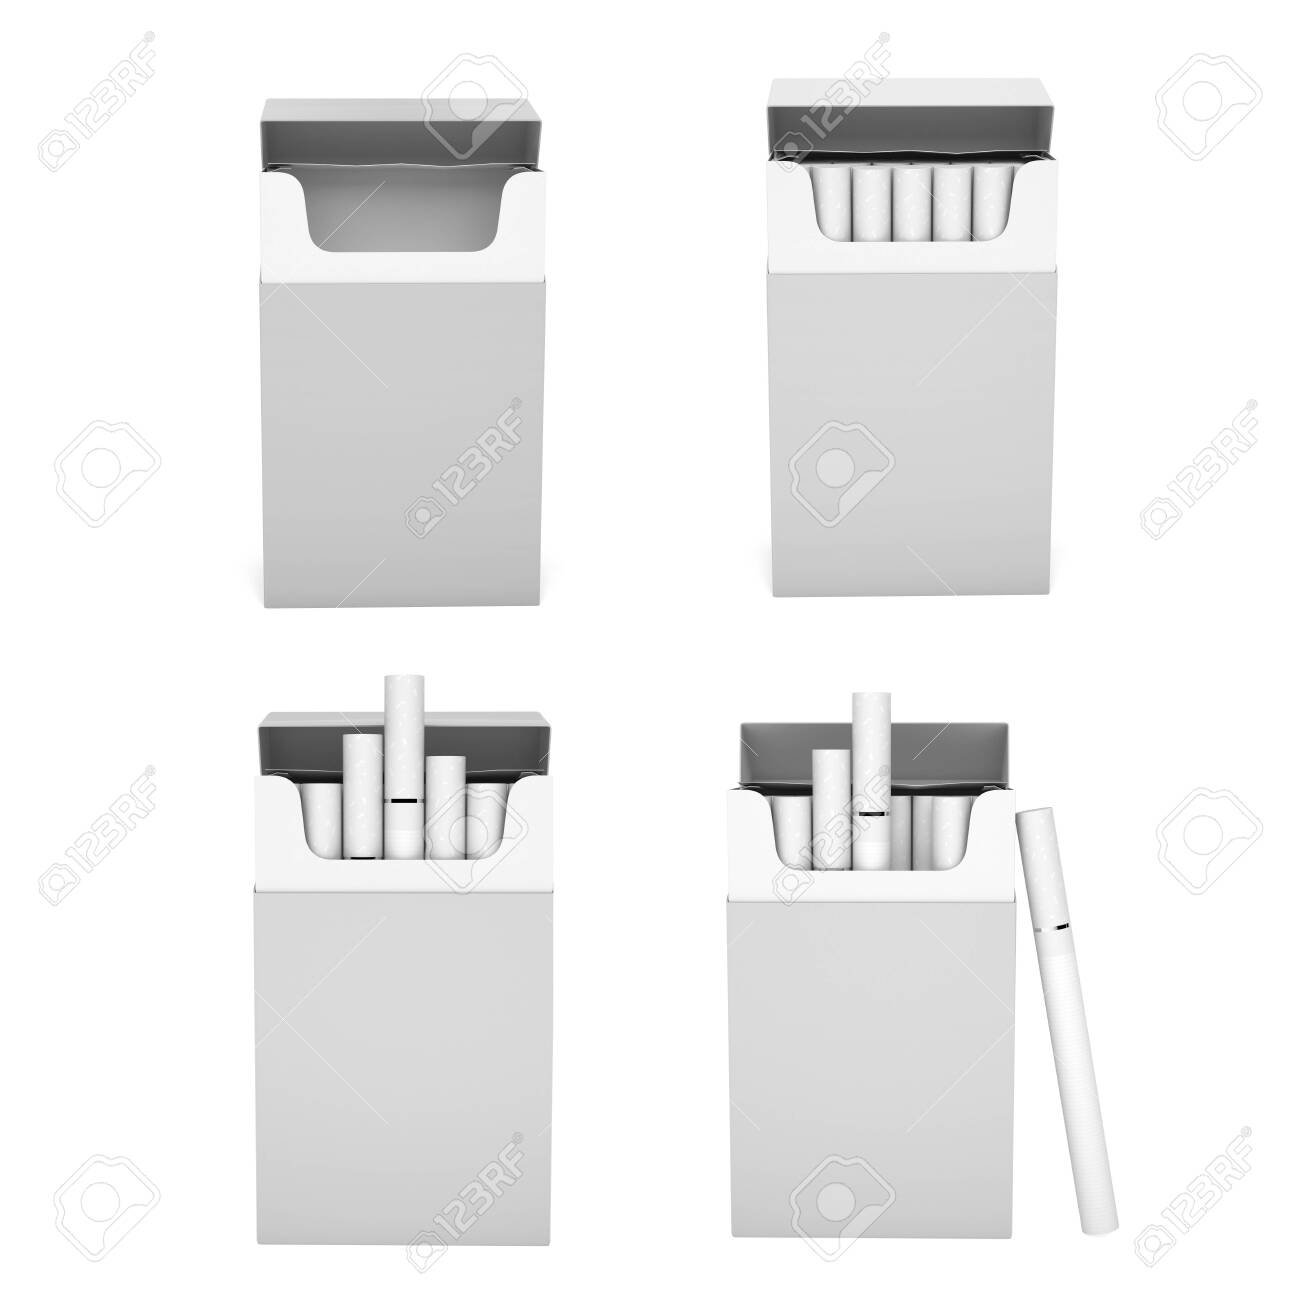 White blank packs of cigarettes. With white filter. 3d rendering illustration isolated on white background - 150525978